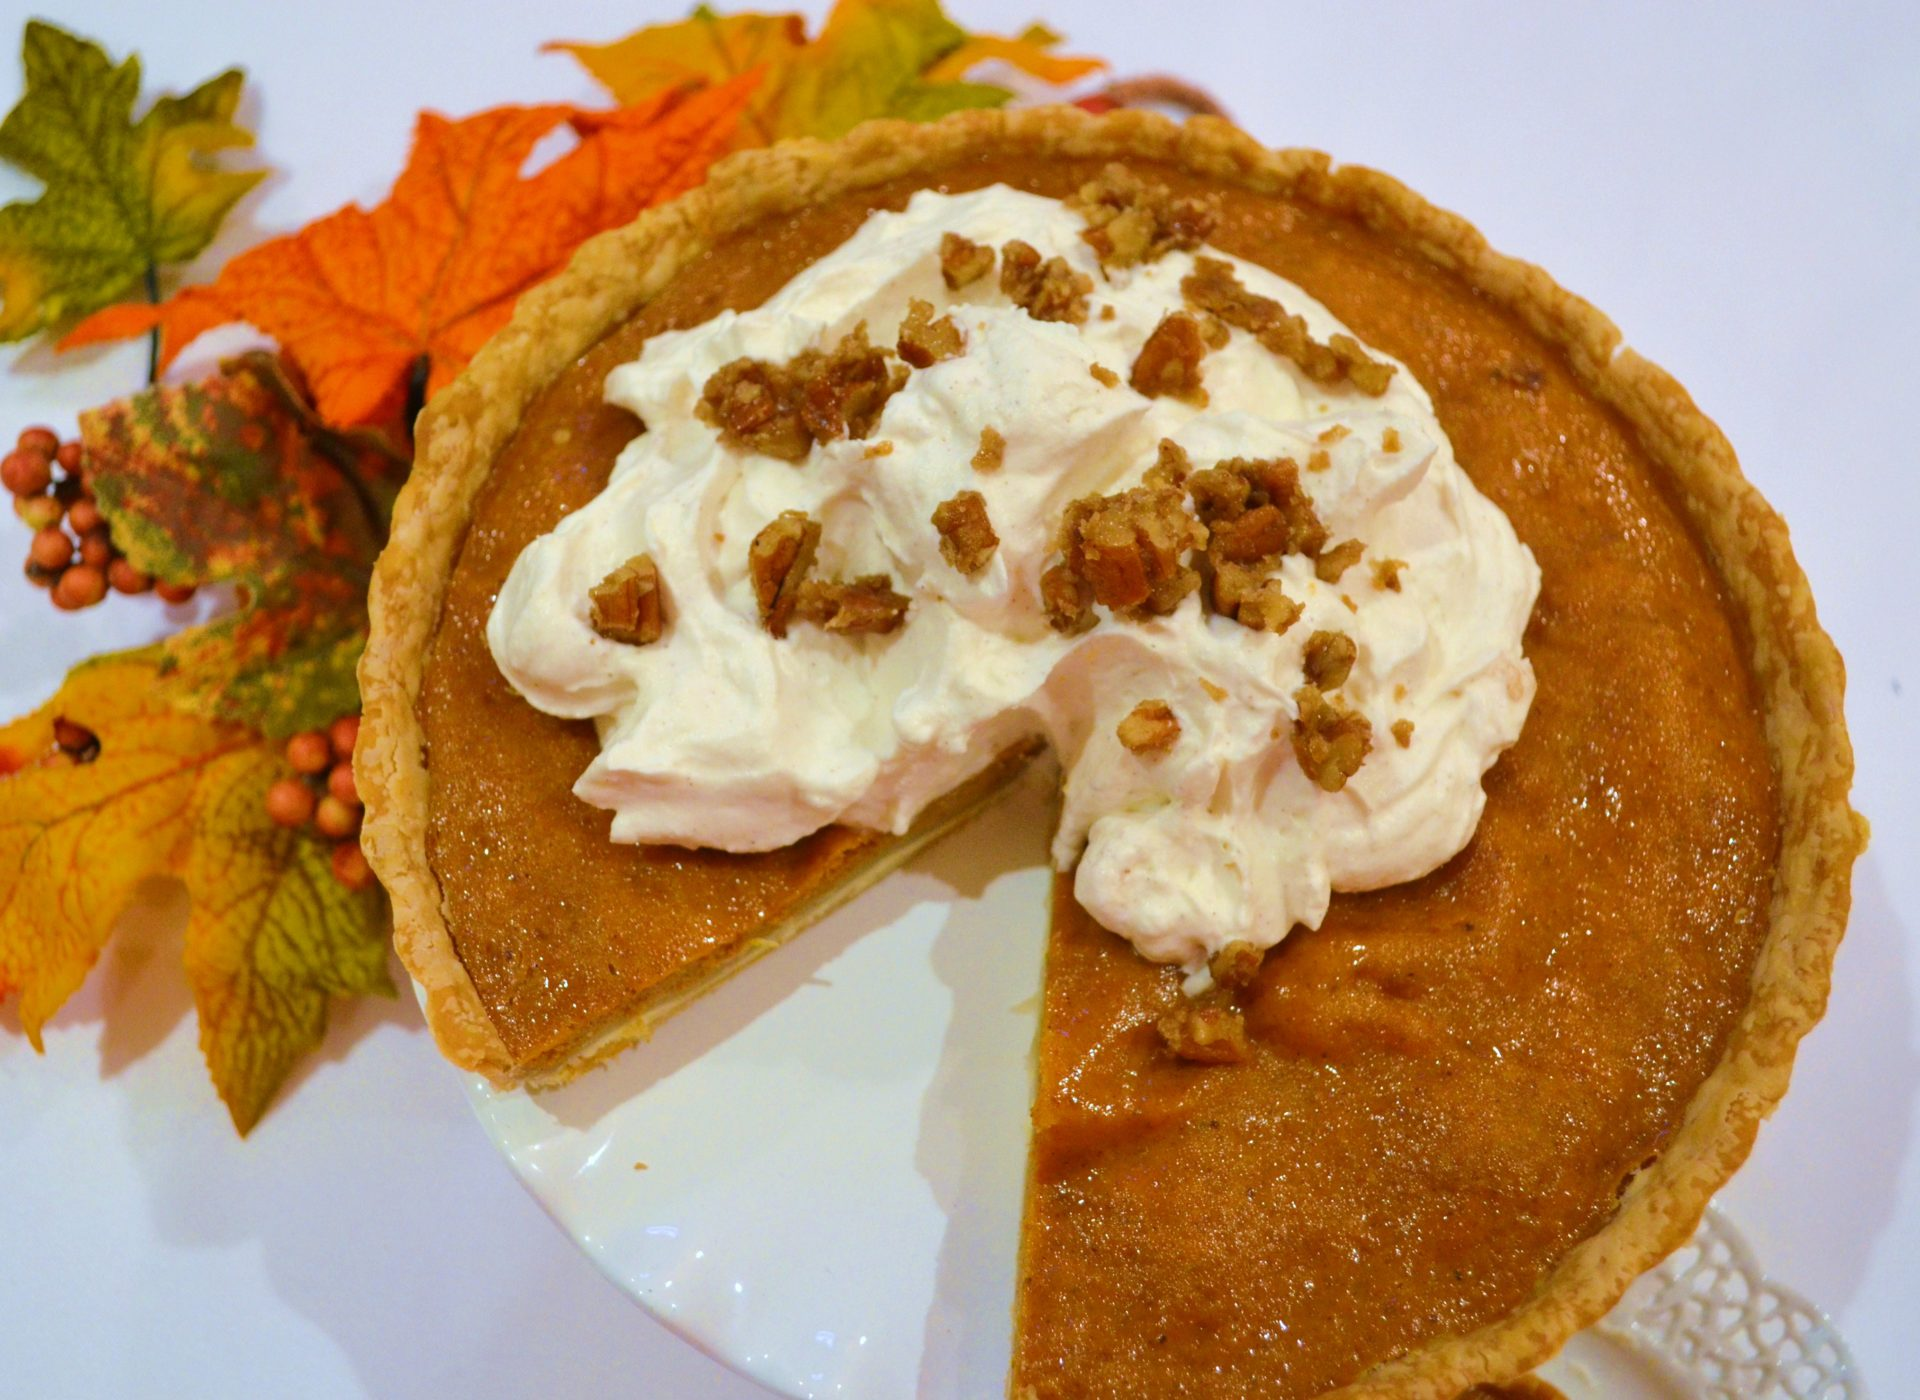 Double Crust Pumpkin Tart with Whipped Cream and Pecan Toffee Recipe|www.lizbushong.com